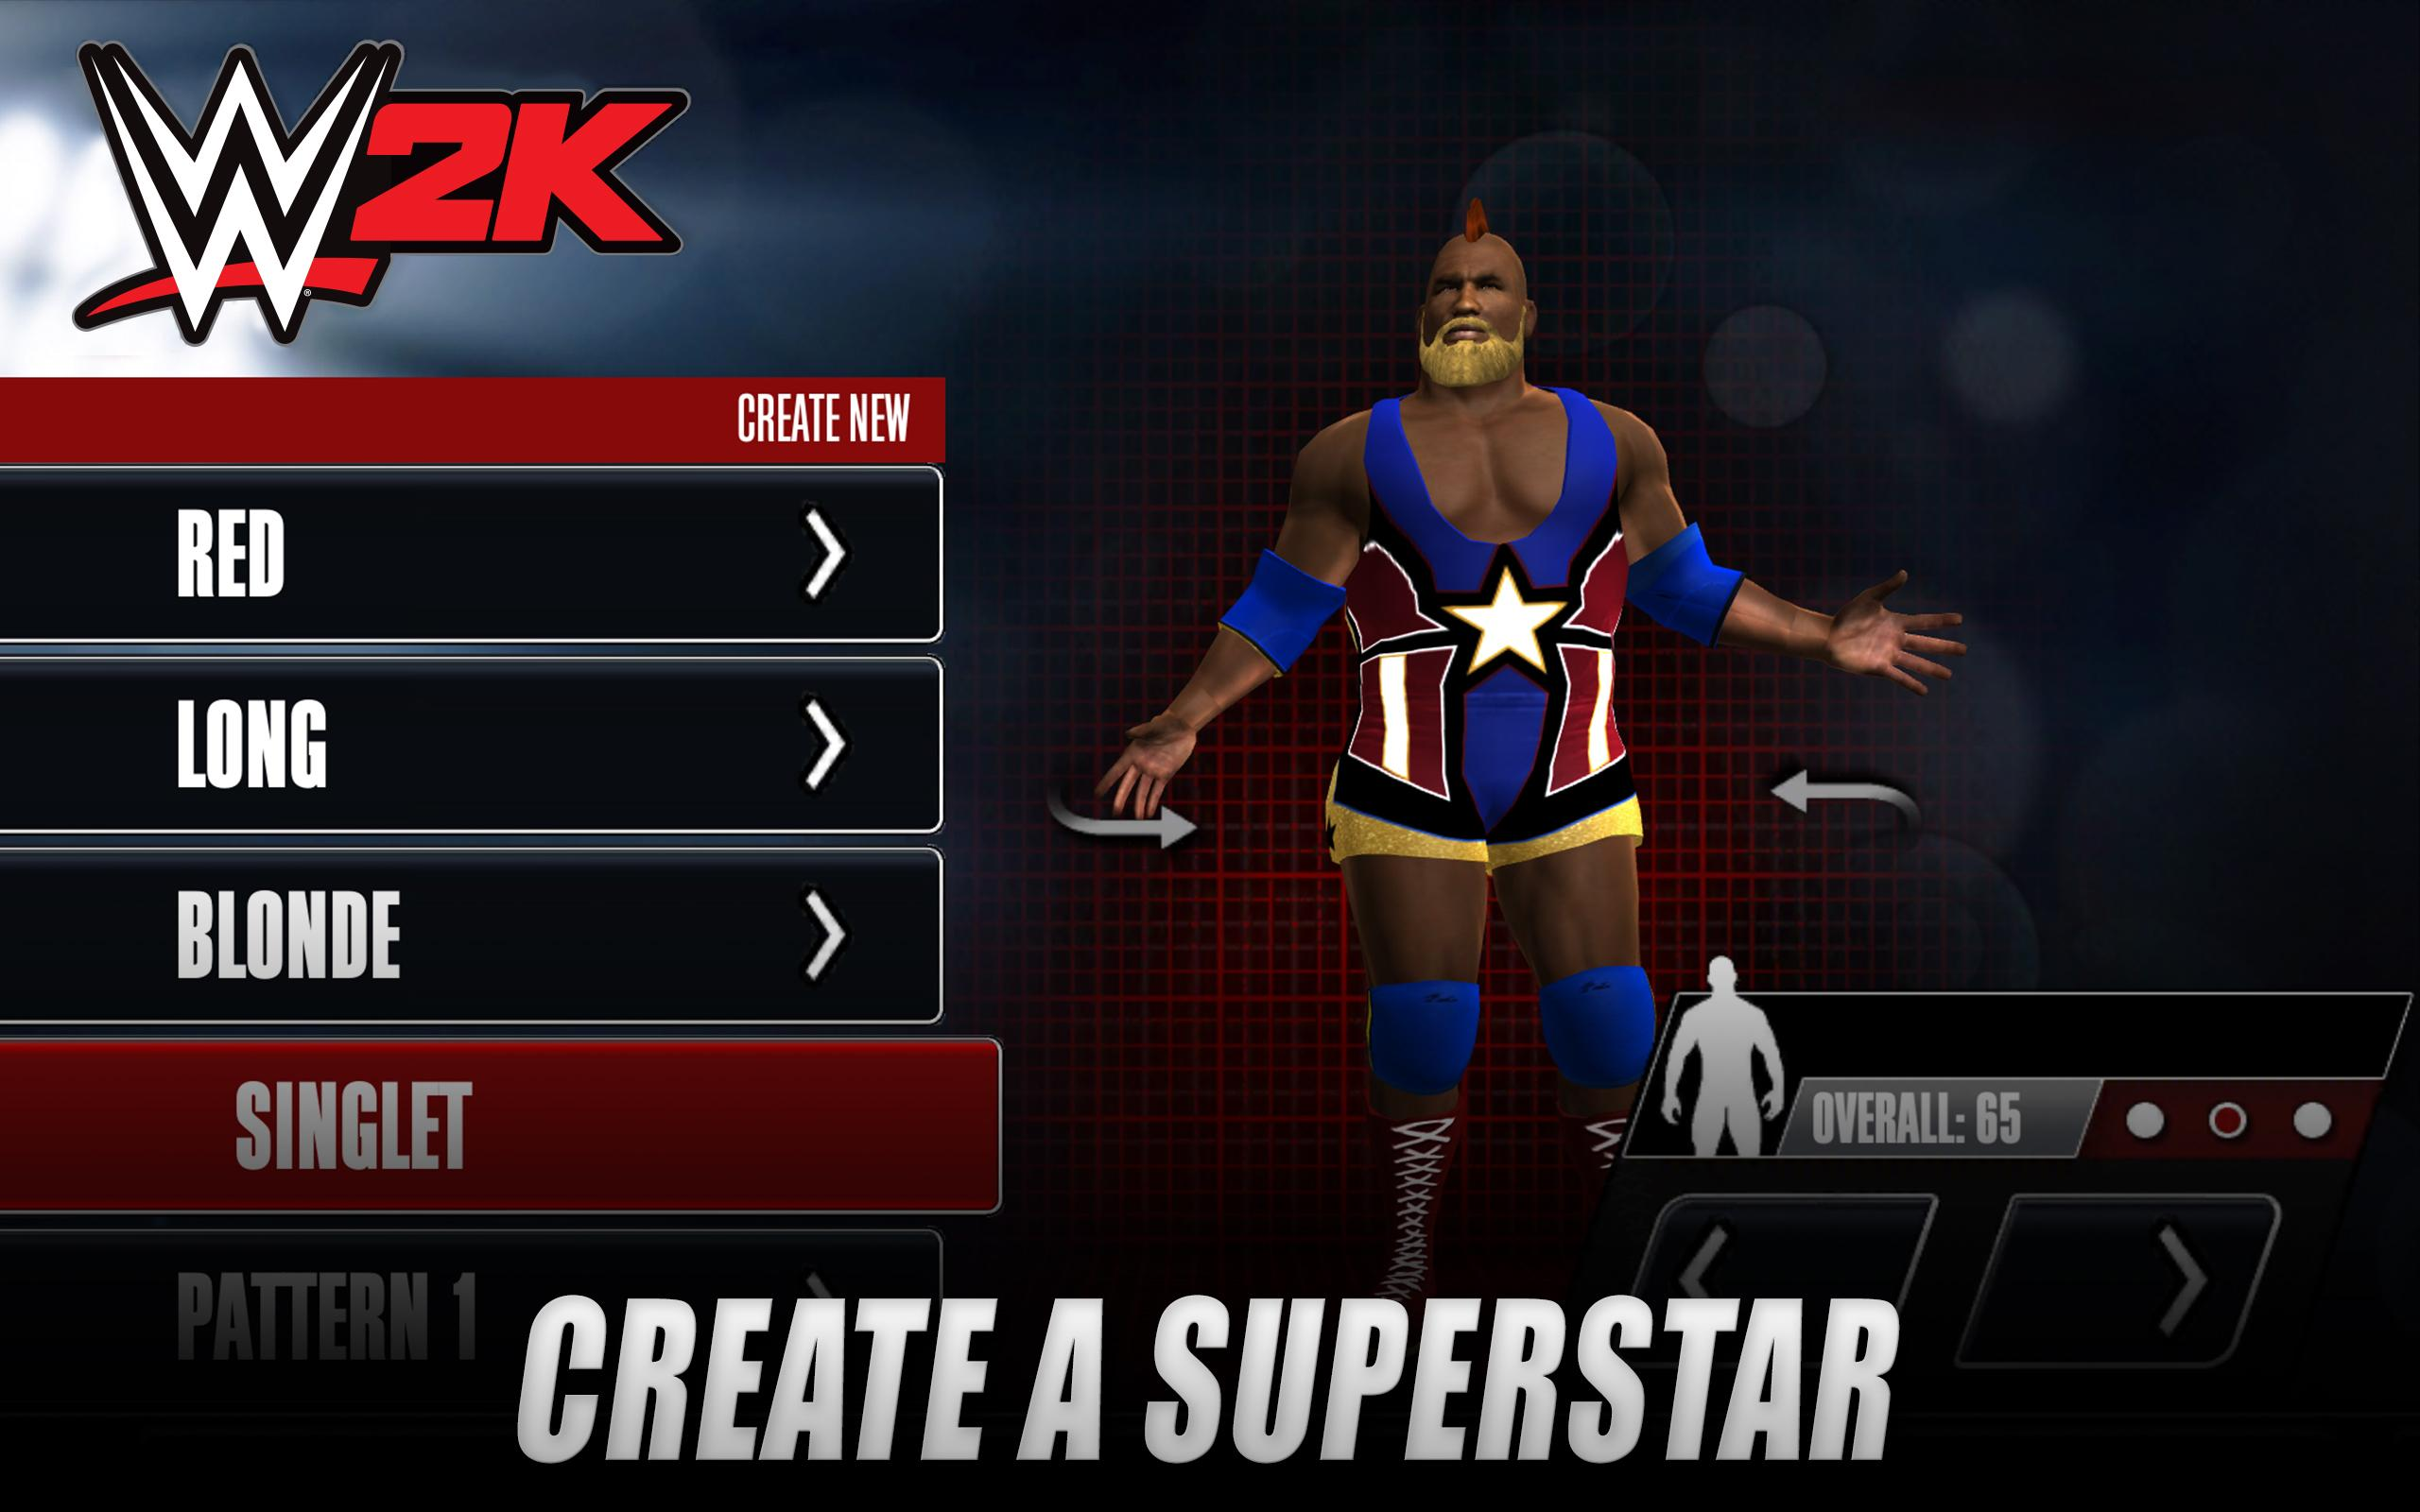 Download WWE 2K on PC with BlueStacks